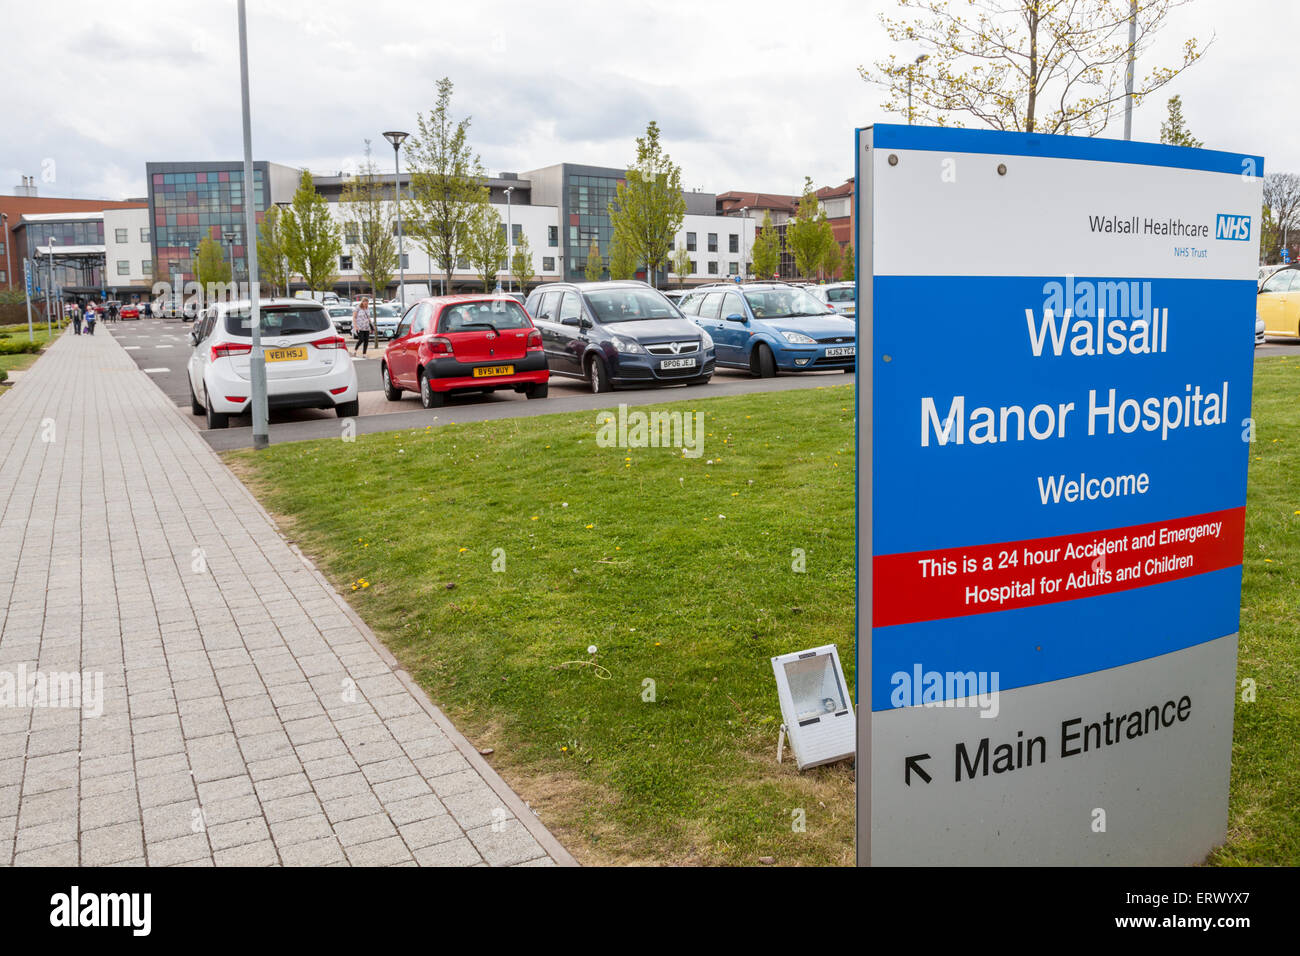 Walsall Manor Hospital, Walsall, West Midlands, England, UK - Stock Image